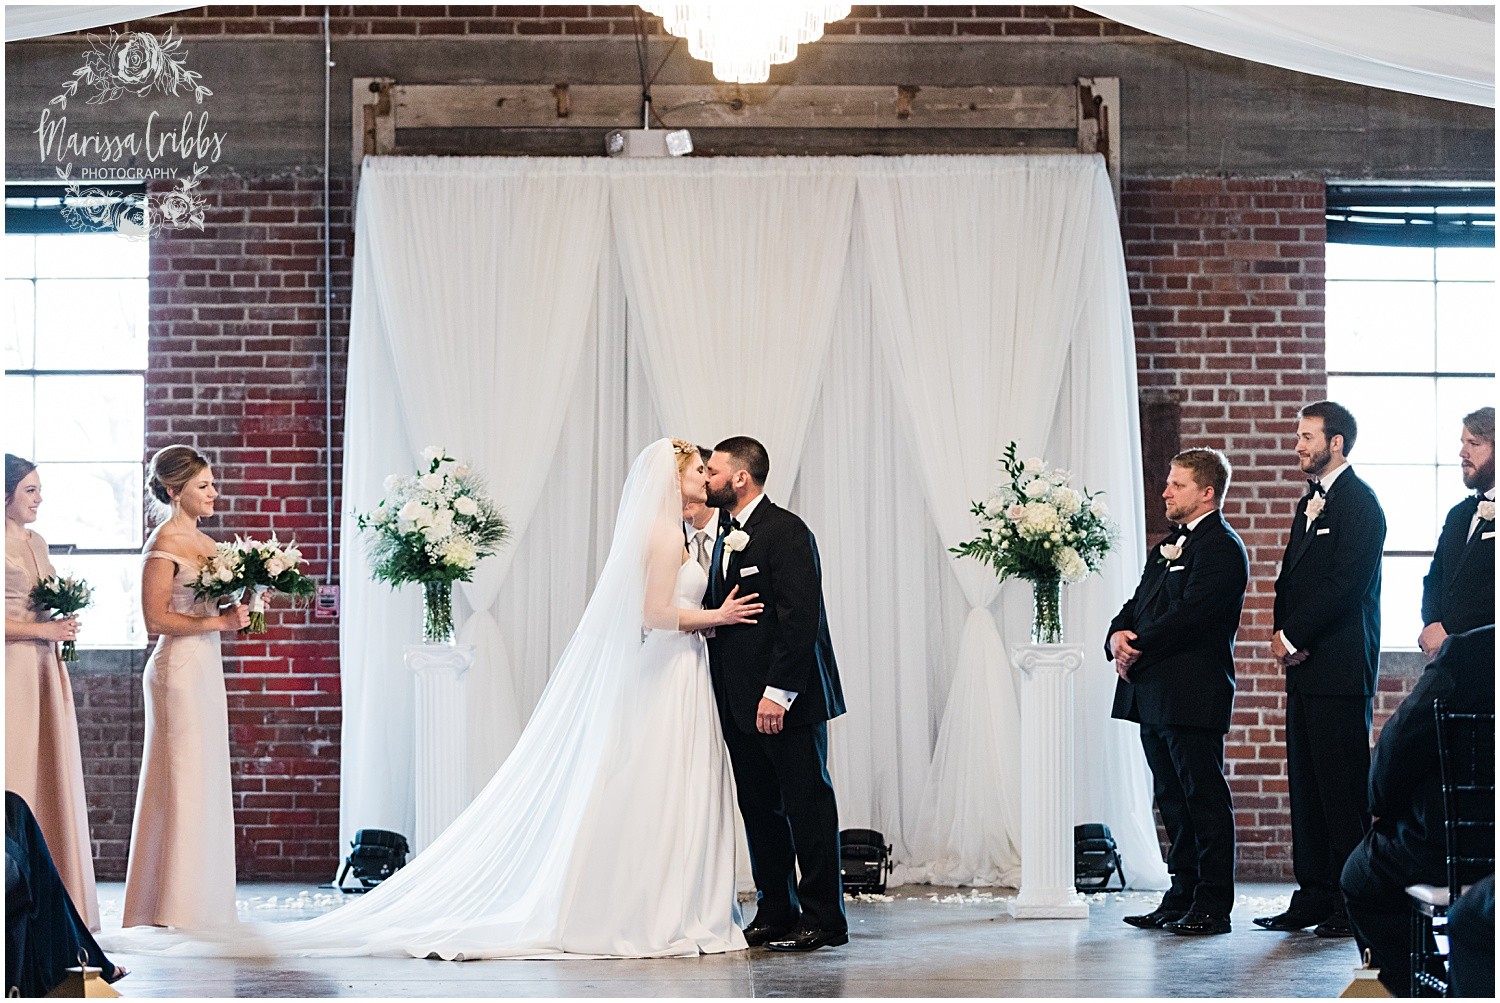 ABBY & CHARLIE WEDDING | THE HUDSON EVENT SPACE WEDDING | MARISSA CRIBBS PHOTOGRAPHY_7555.jpg